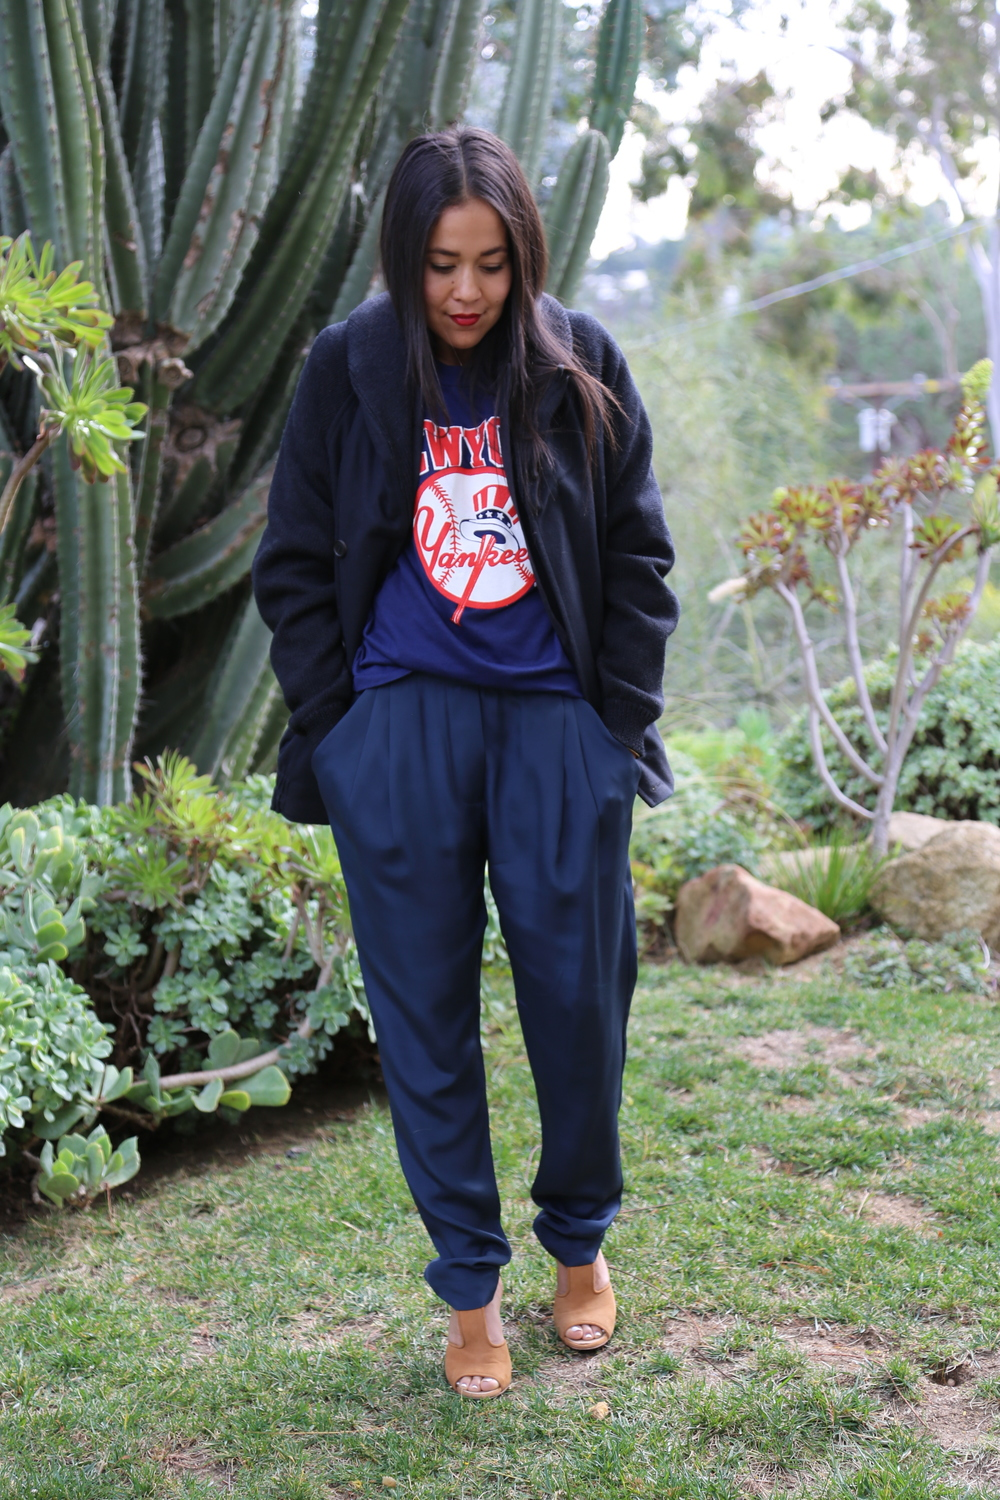 VANESSA-BELETIC-SPORTS-TEE-PHILLIP-LIM-SILK-PANT-PROENZA-HEELS-YANKEES-VINTAGE-LOS-ANGELES.JPG